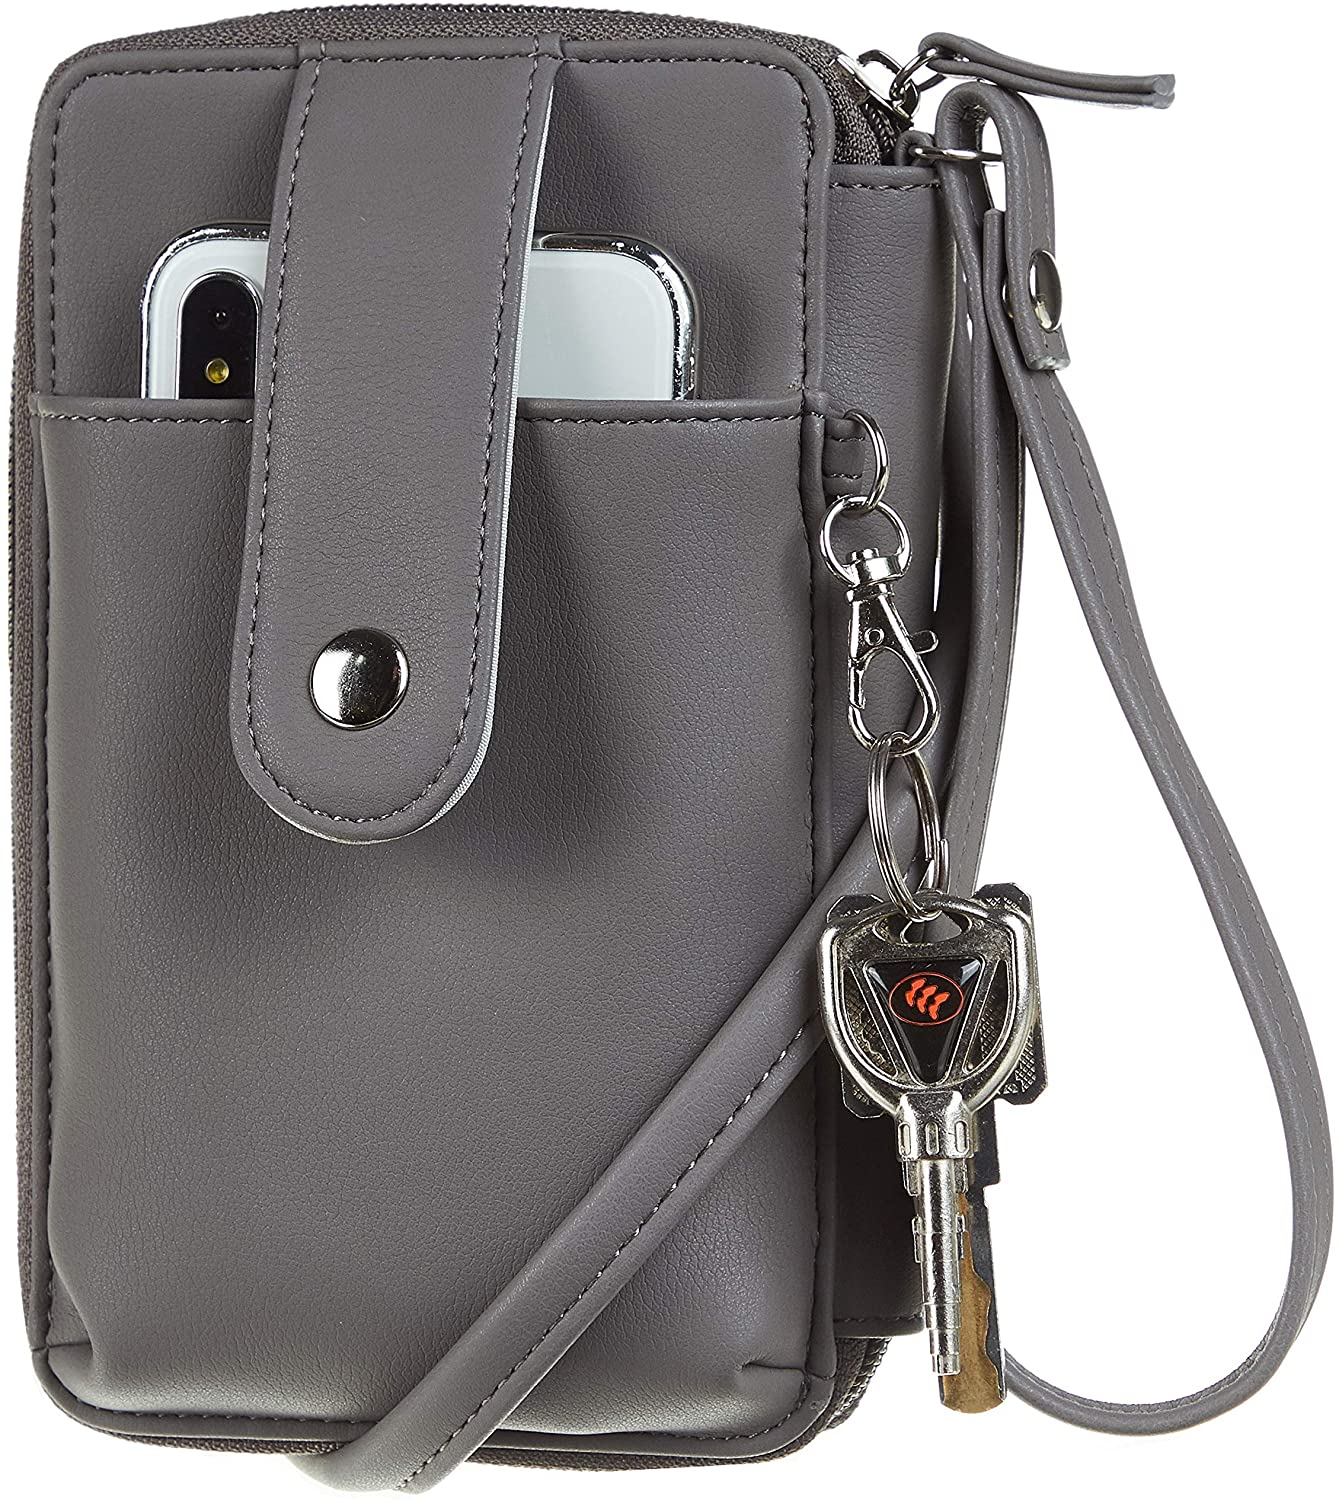 Sodsay Leather RFID Womens Crossbody Cell Phone Purse Credit Card Holder Wallet